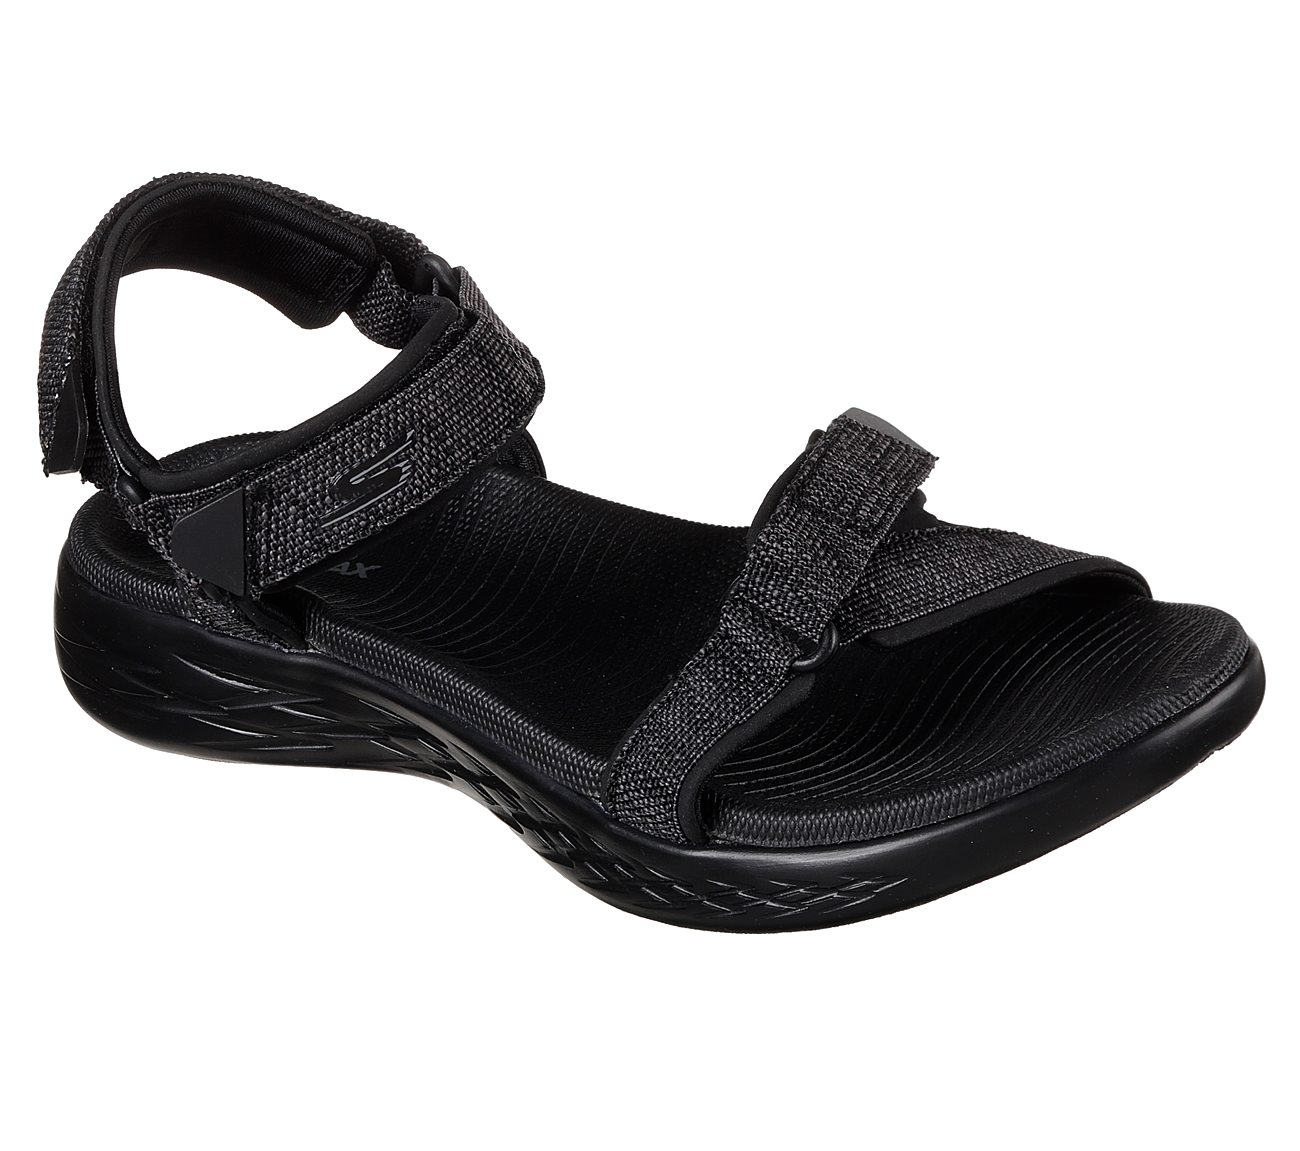 Skechers On The Go 600 Radiant Skechers On The Go Ankle Strap Sandals Skechers